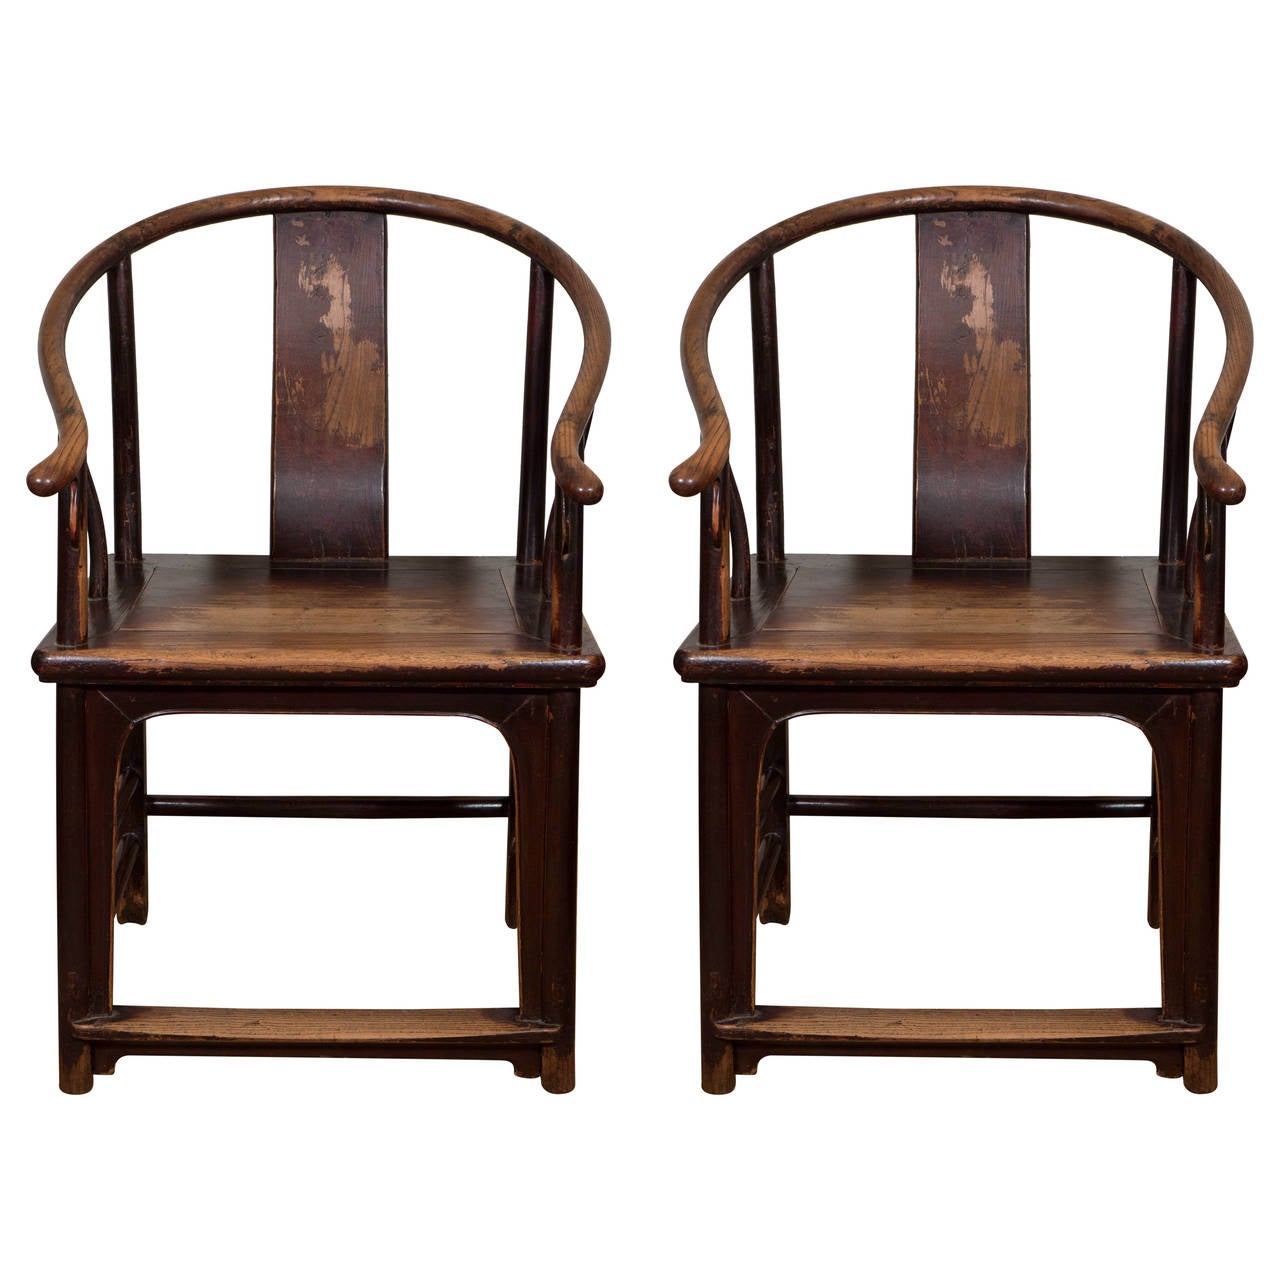 desk chair hardwood floor rocking folding a pair of 18th century chinese horseshoe chairs at 1stdibs